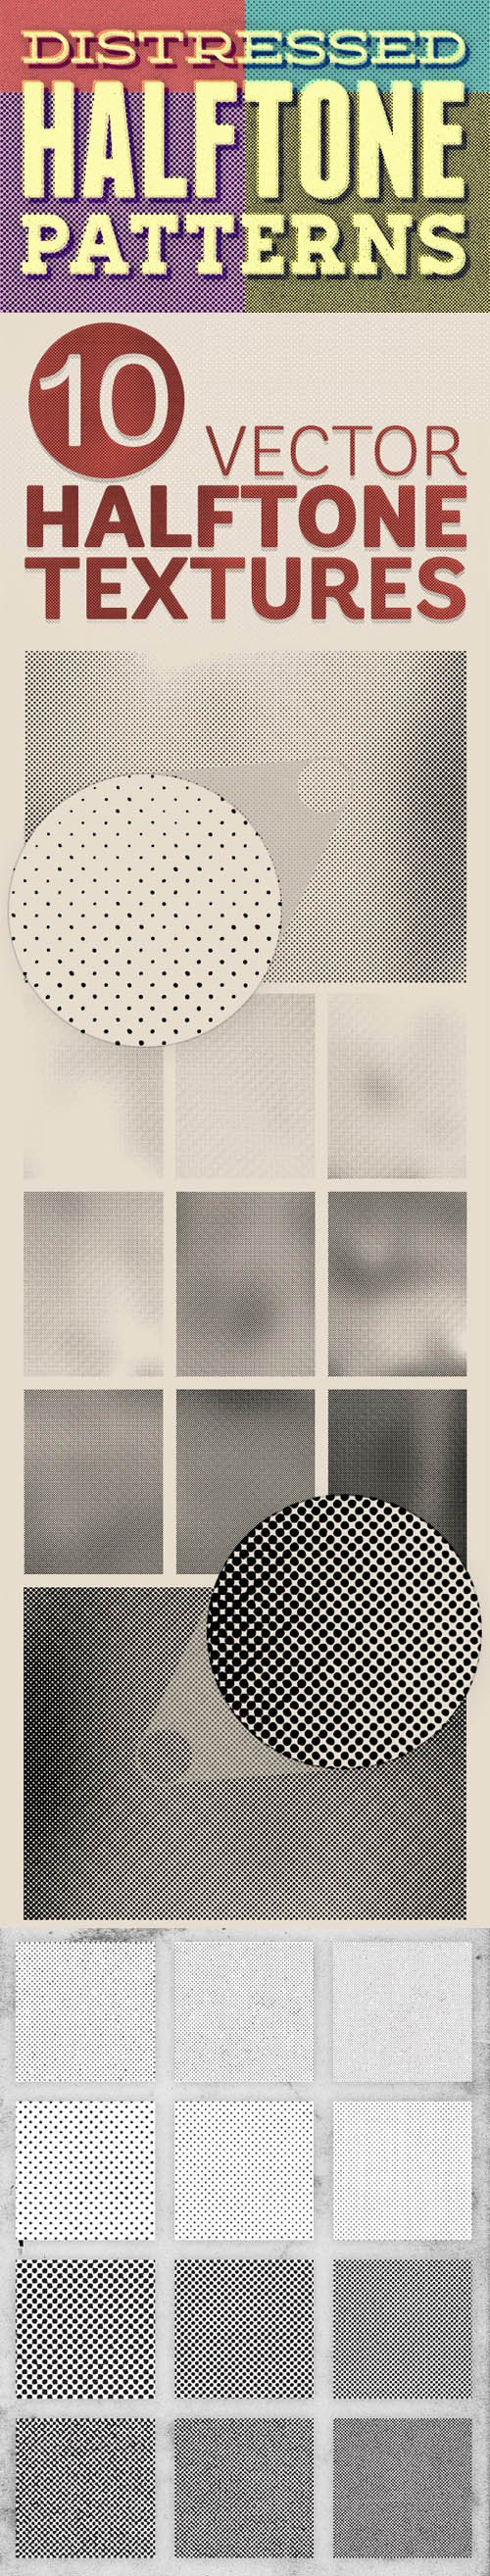 22 Halftone Photoshop Pattern Textures + Detailed Vector Backgrounds